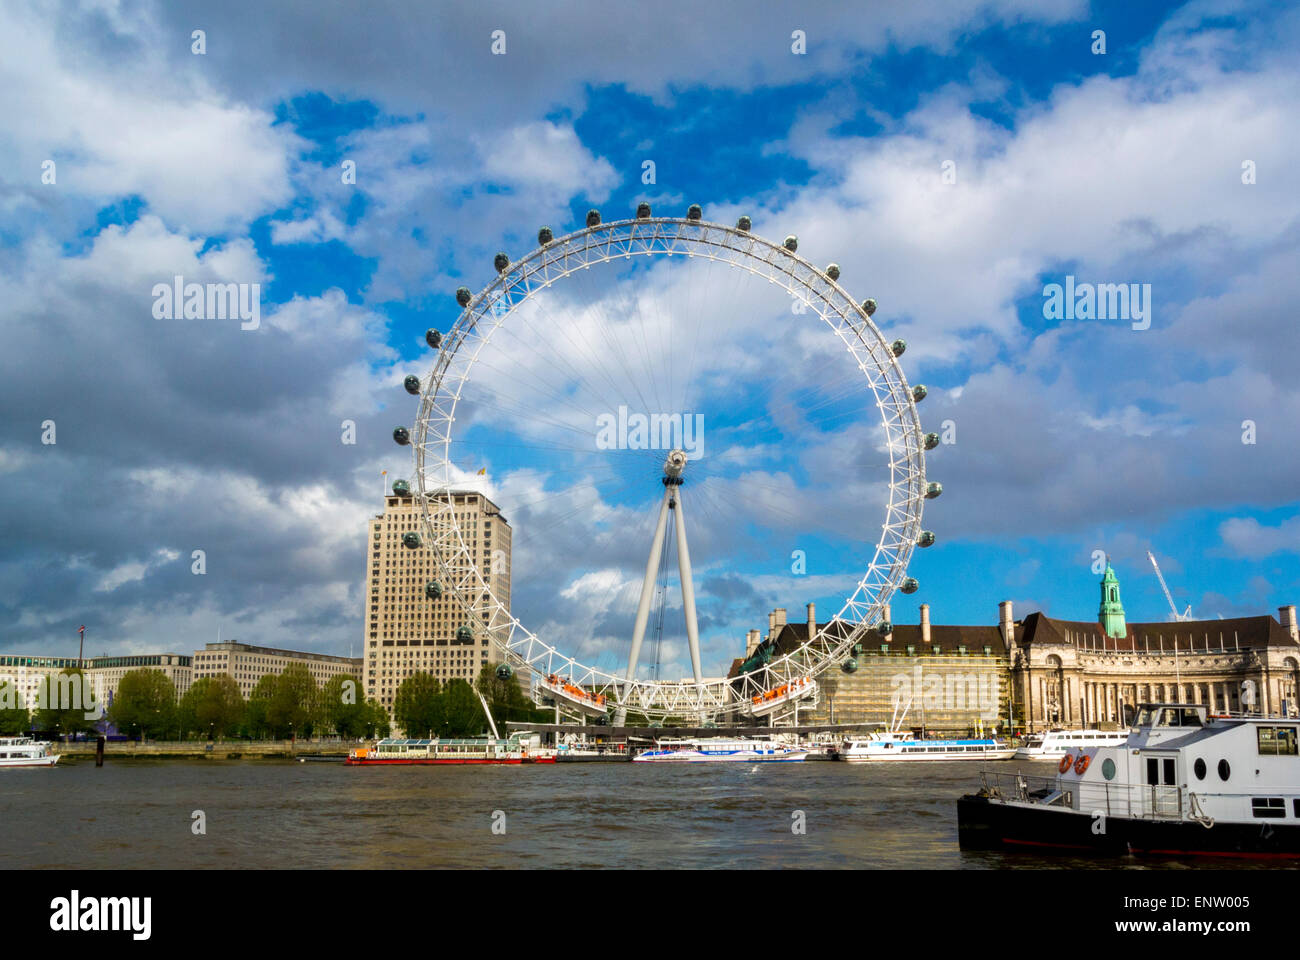 The London Eye, River Thames, London, UK. Stock Photo